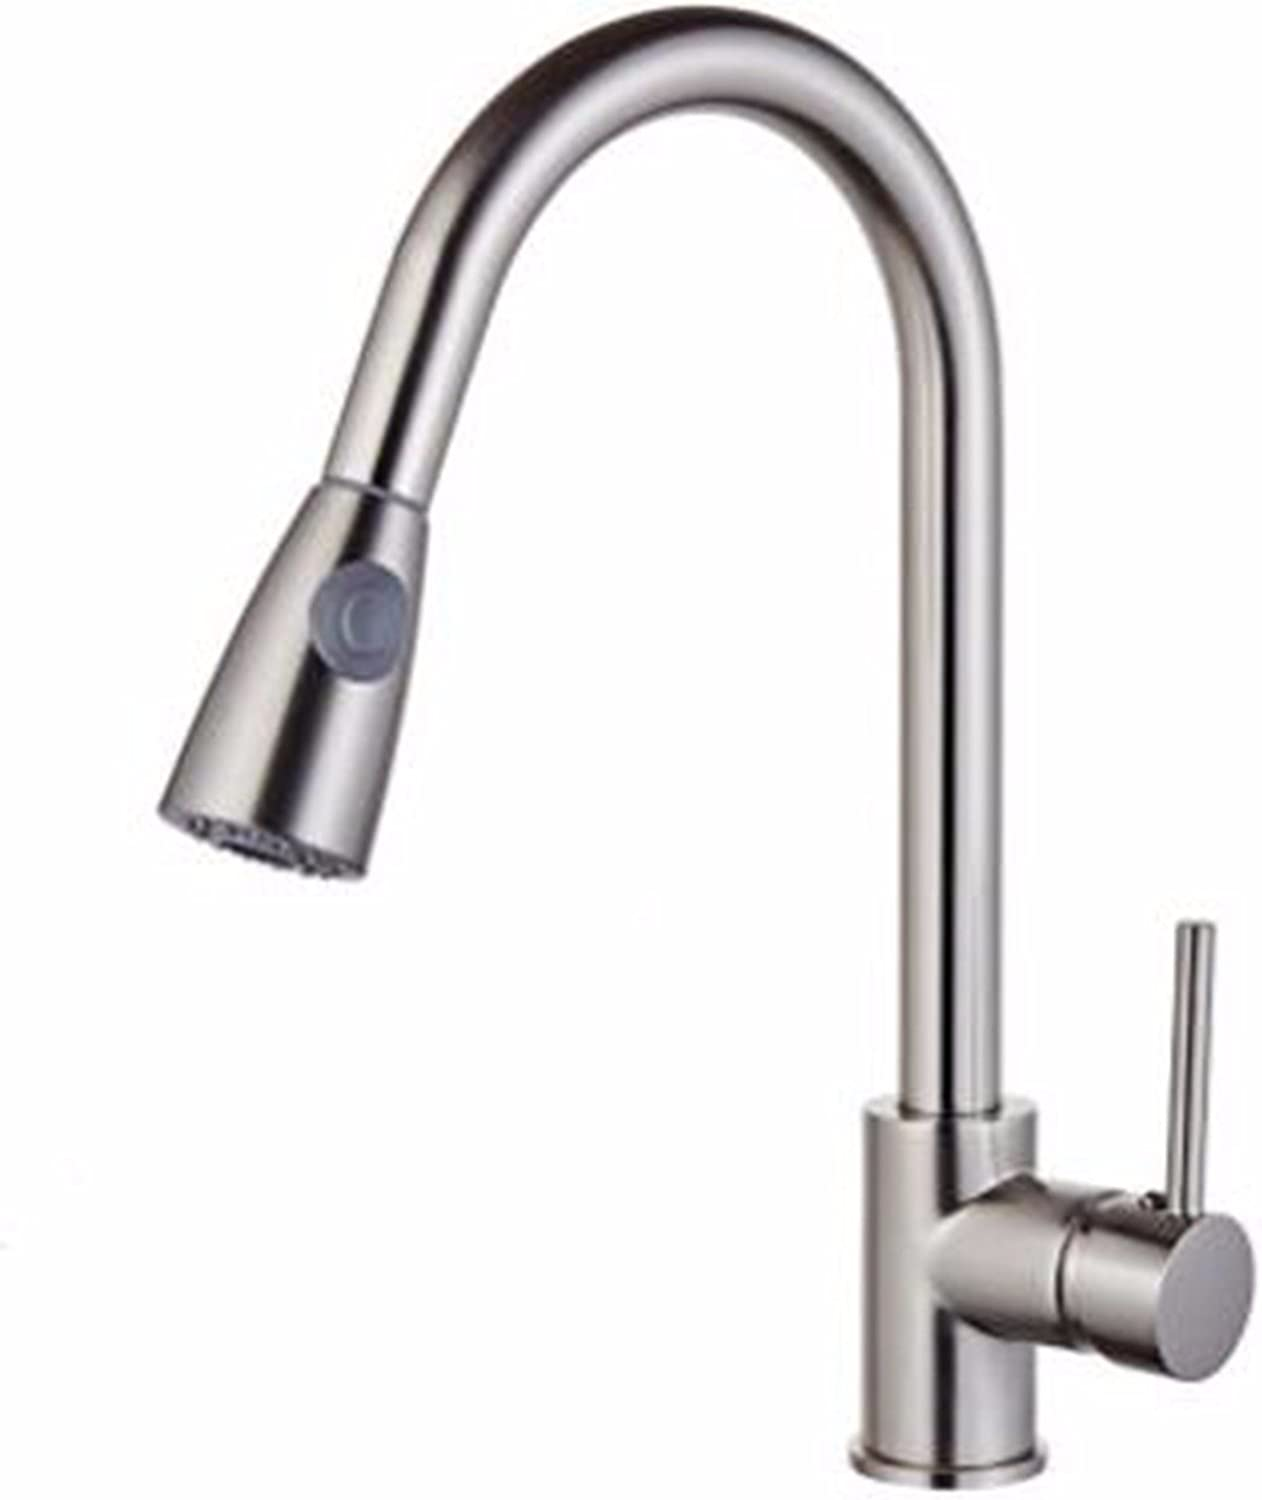 JFBZS-kitchen sink taps Kitchen Pull Faucet Flume Vegetable Basin Hot And Cold redating Nickel Wire Faucet